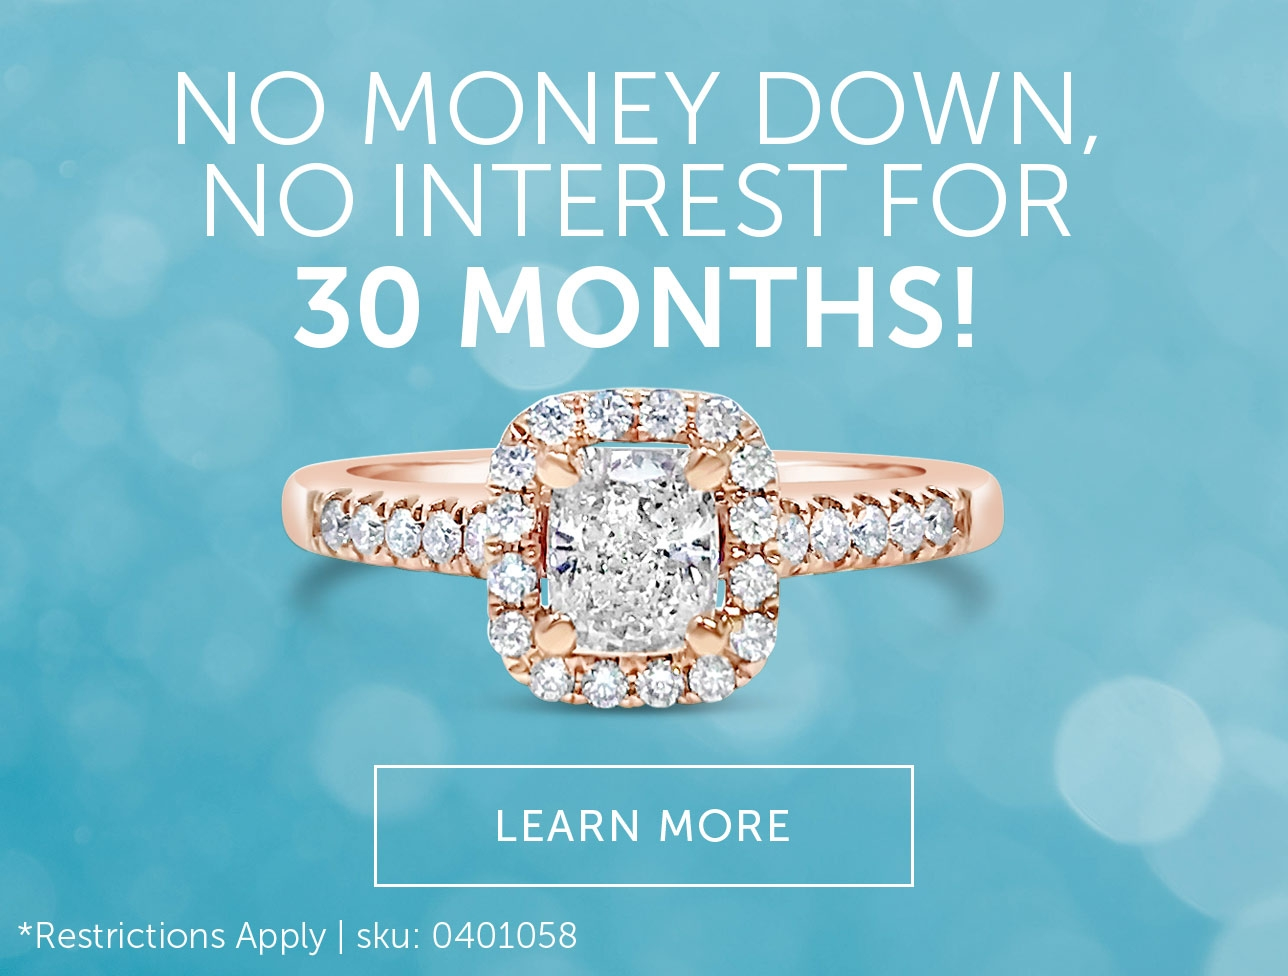 Special 30 Month Fianancing